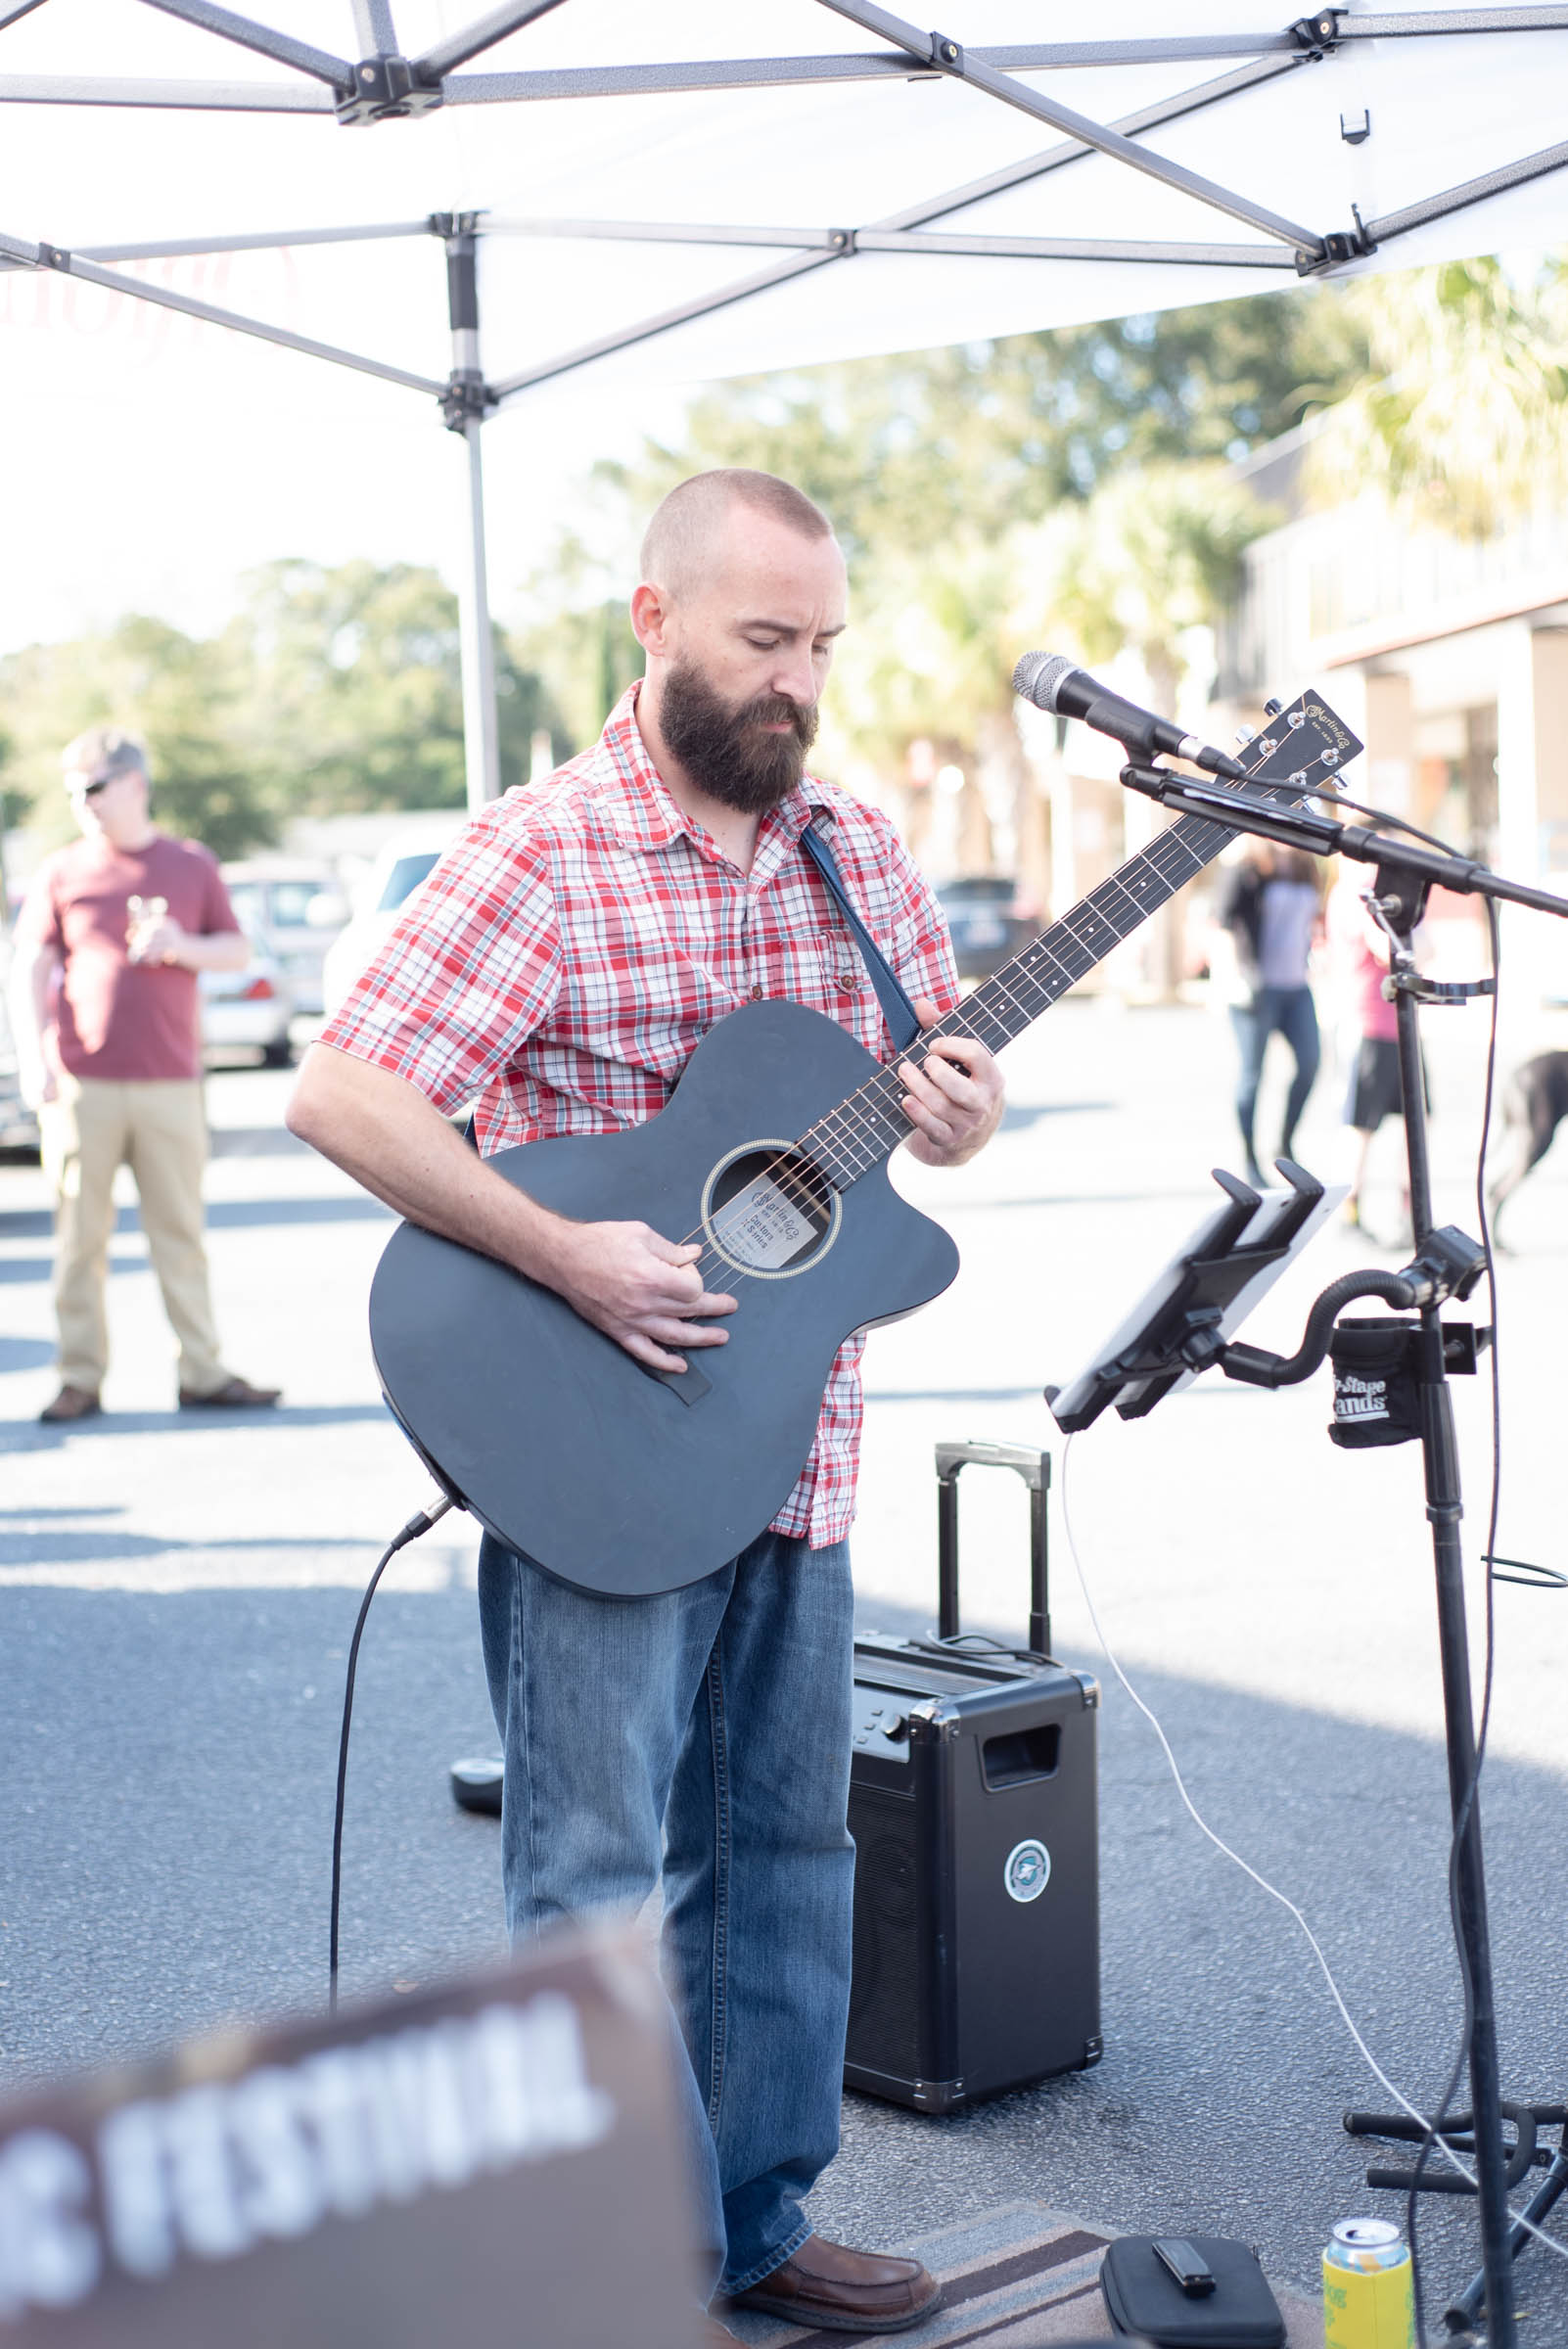 Thanks to Clint Powell for providing us with live music.